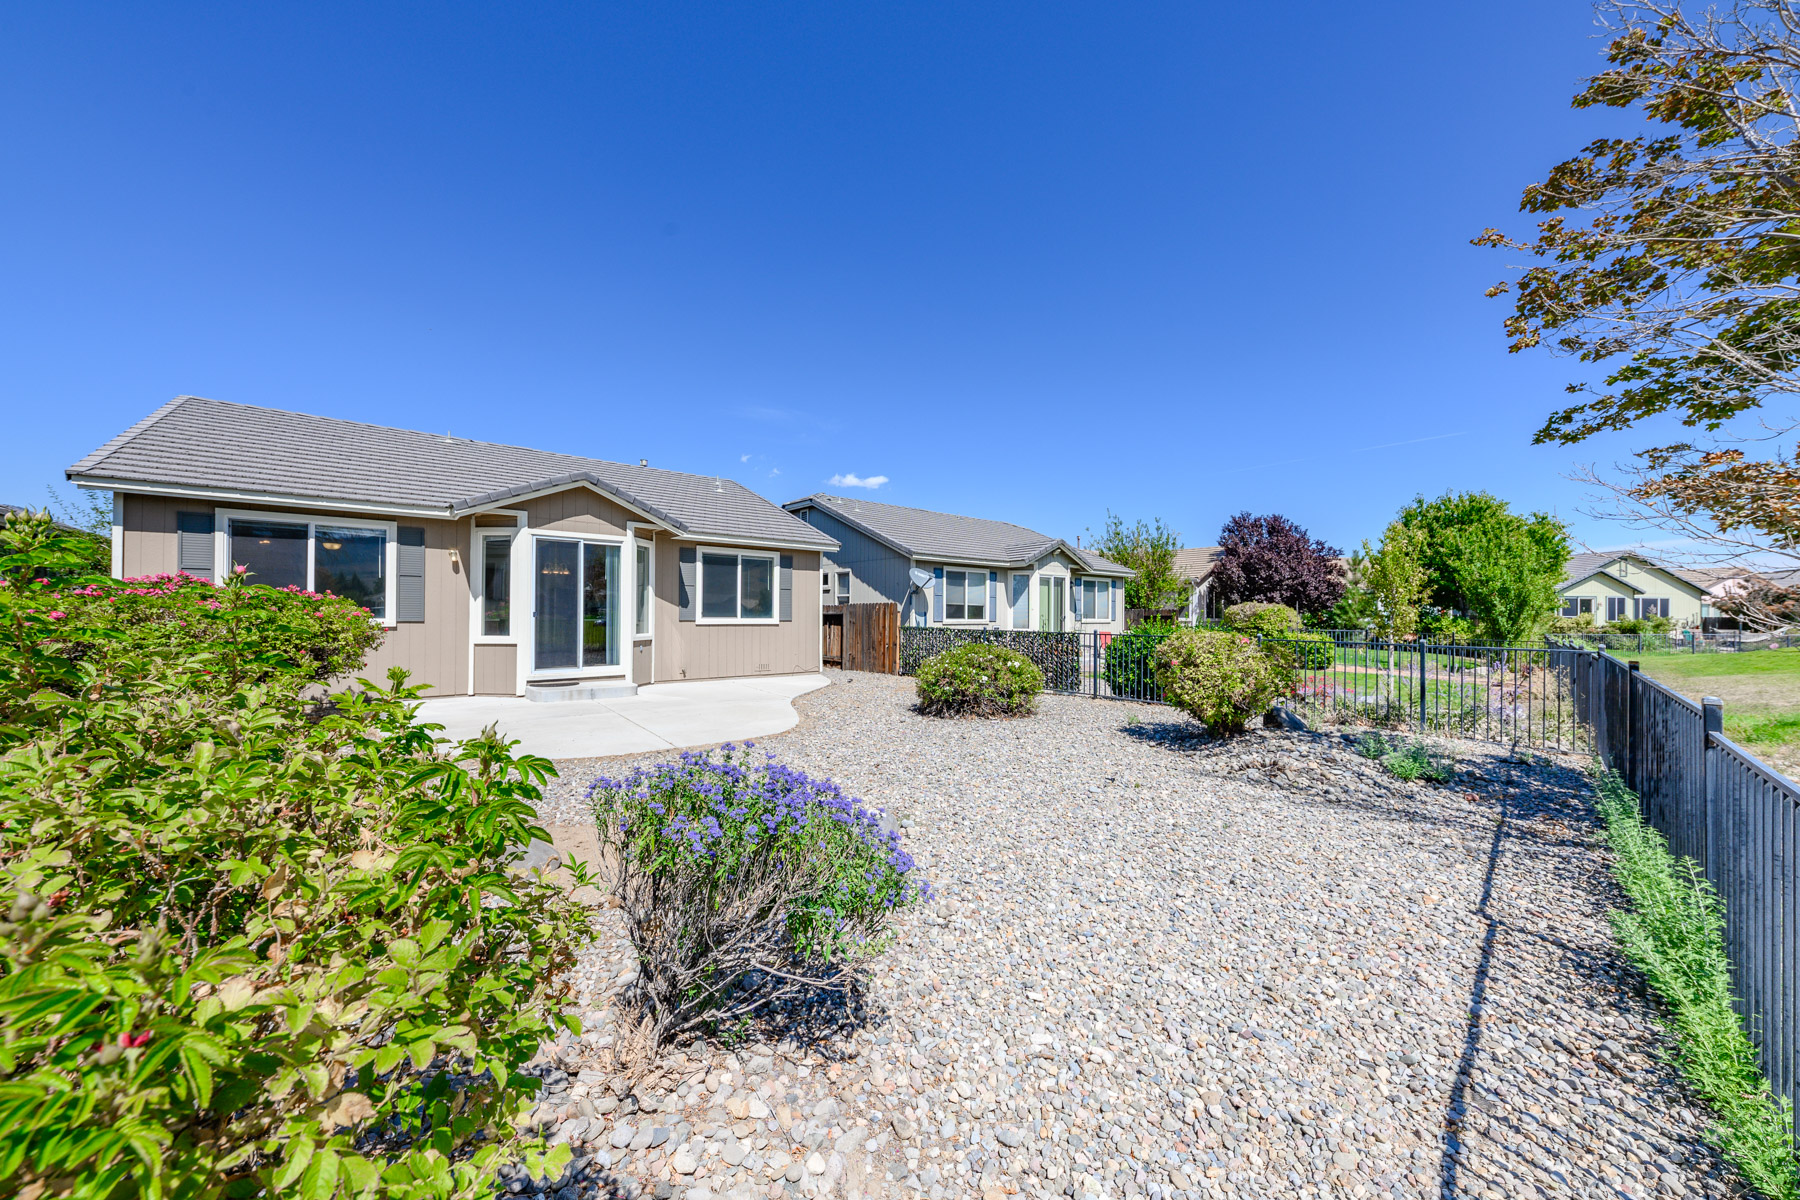 Additional photo for property listing at 379 Royal Troon Drive, Dayton, Nevada 379 Royal Troon Drive 代顿, 内华达州 89403 美国